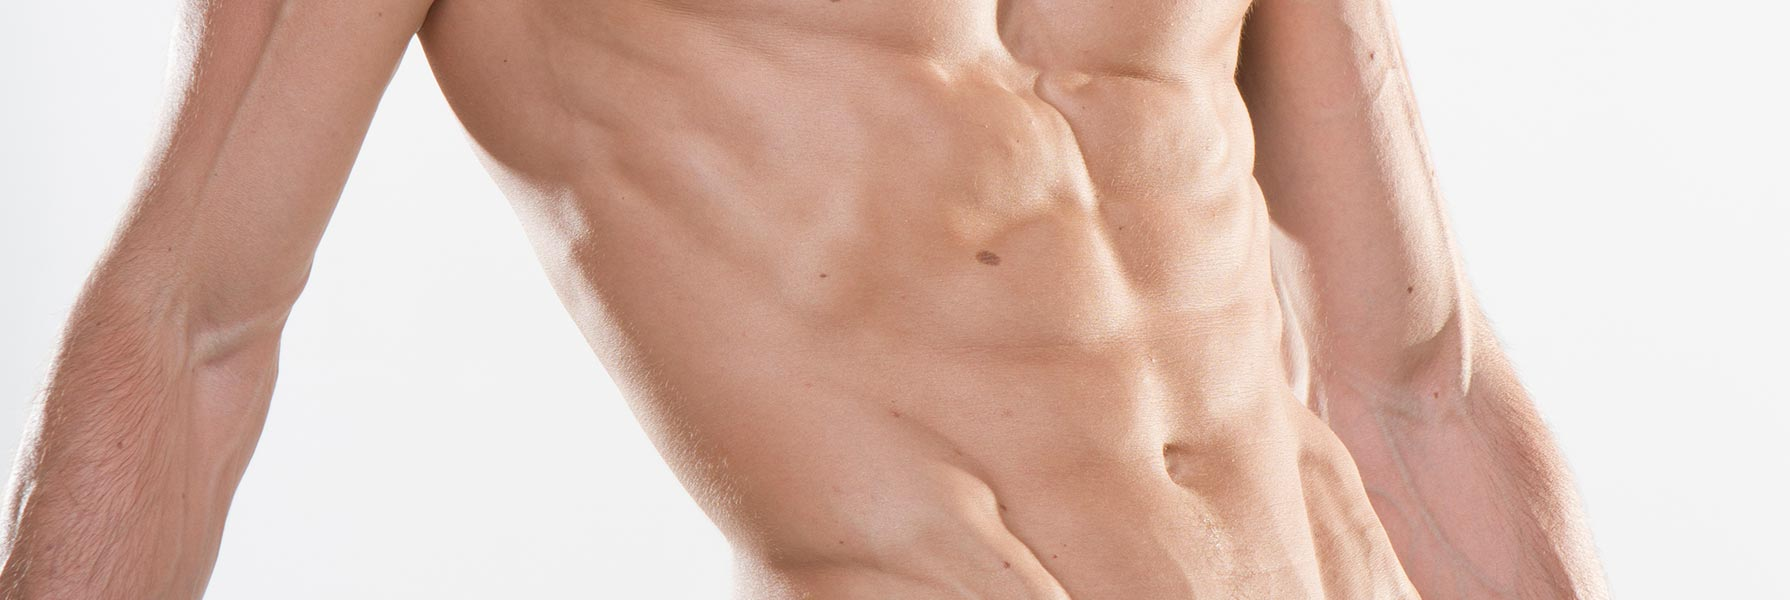 male abdominoplasty - tummy tuck - image 001